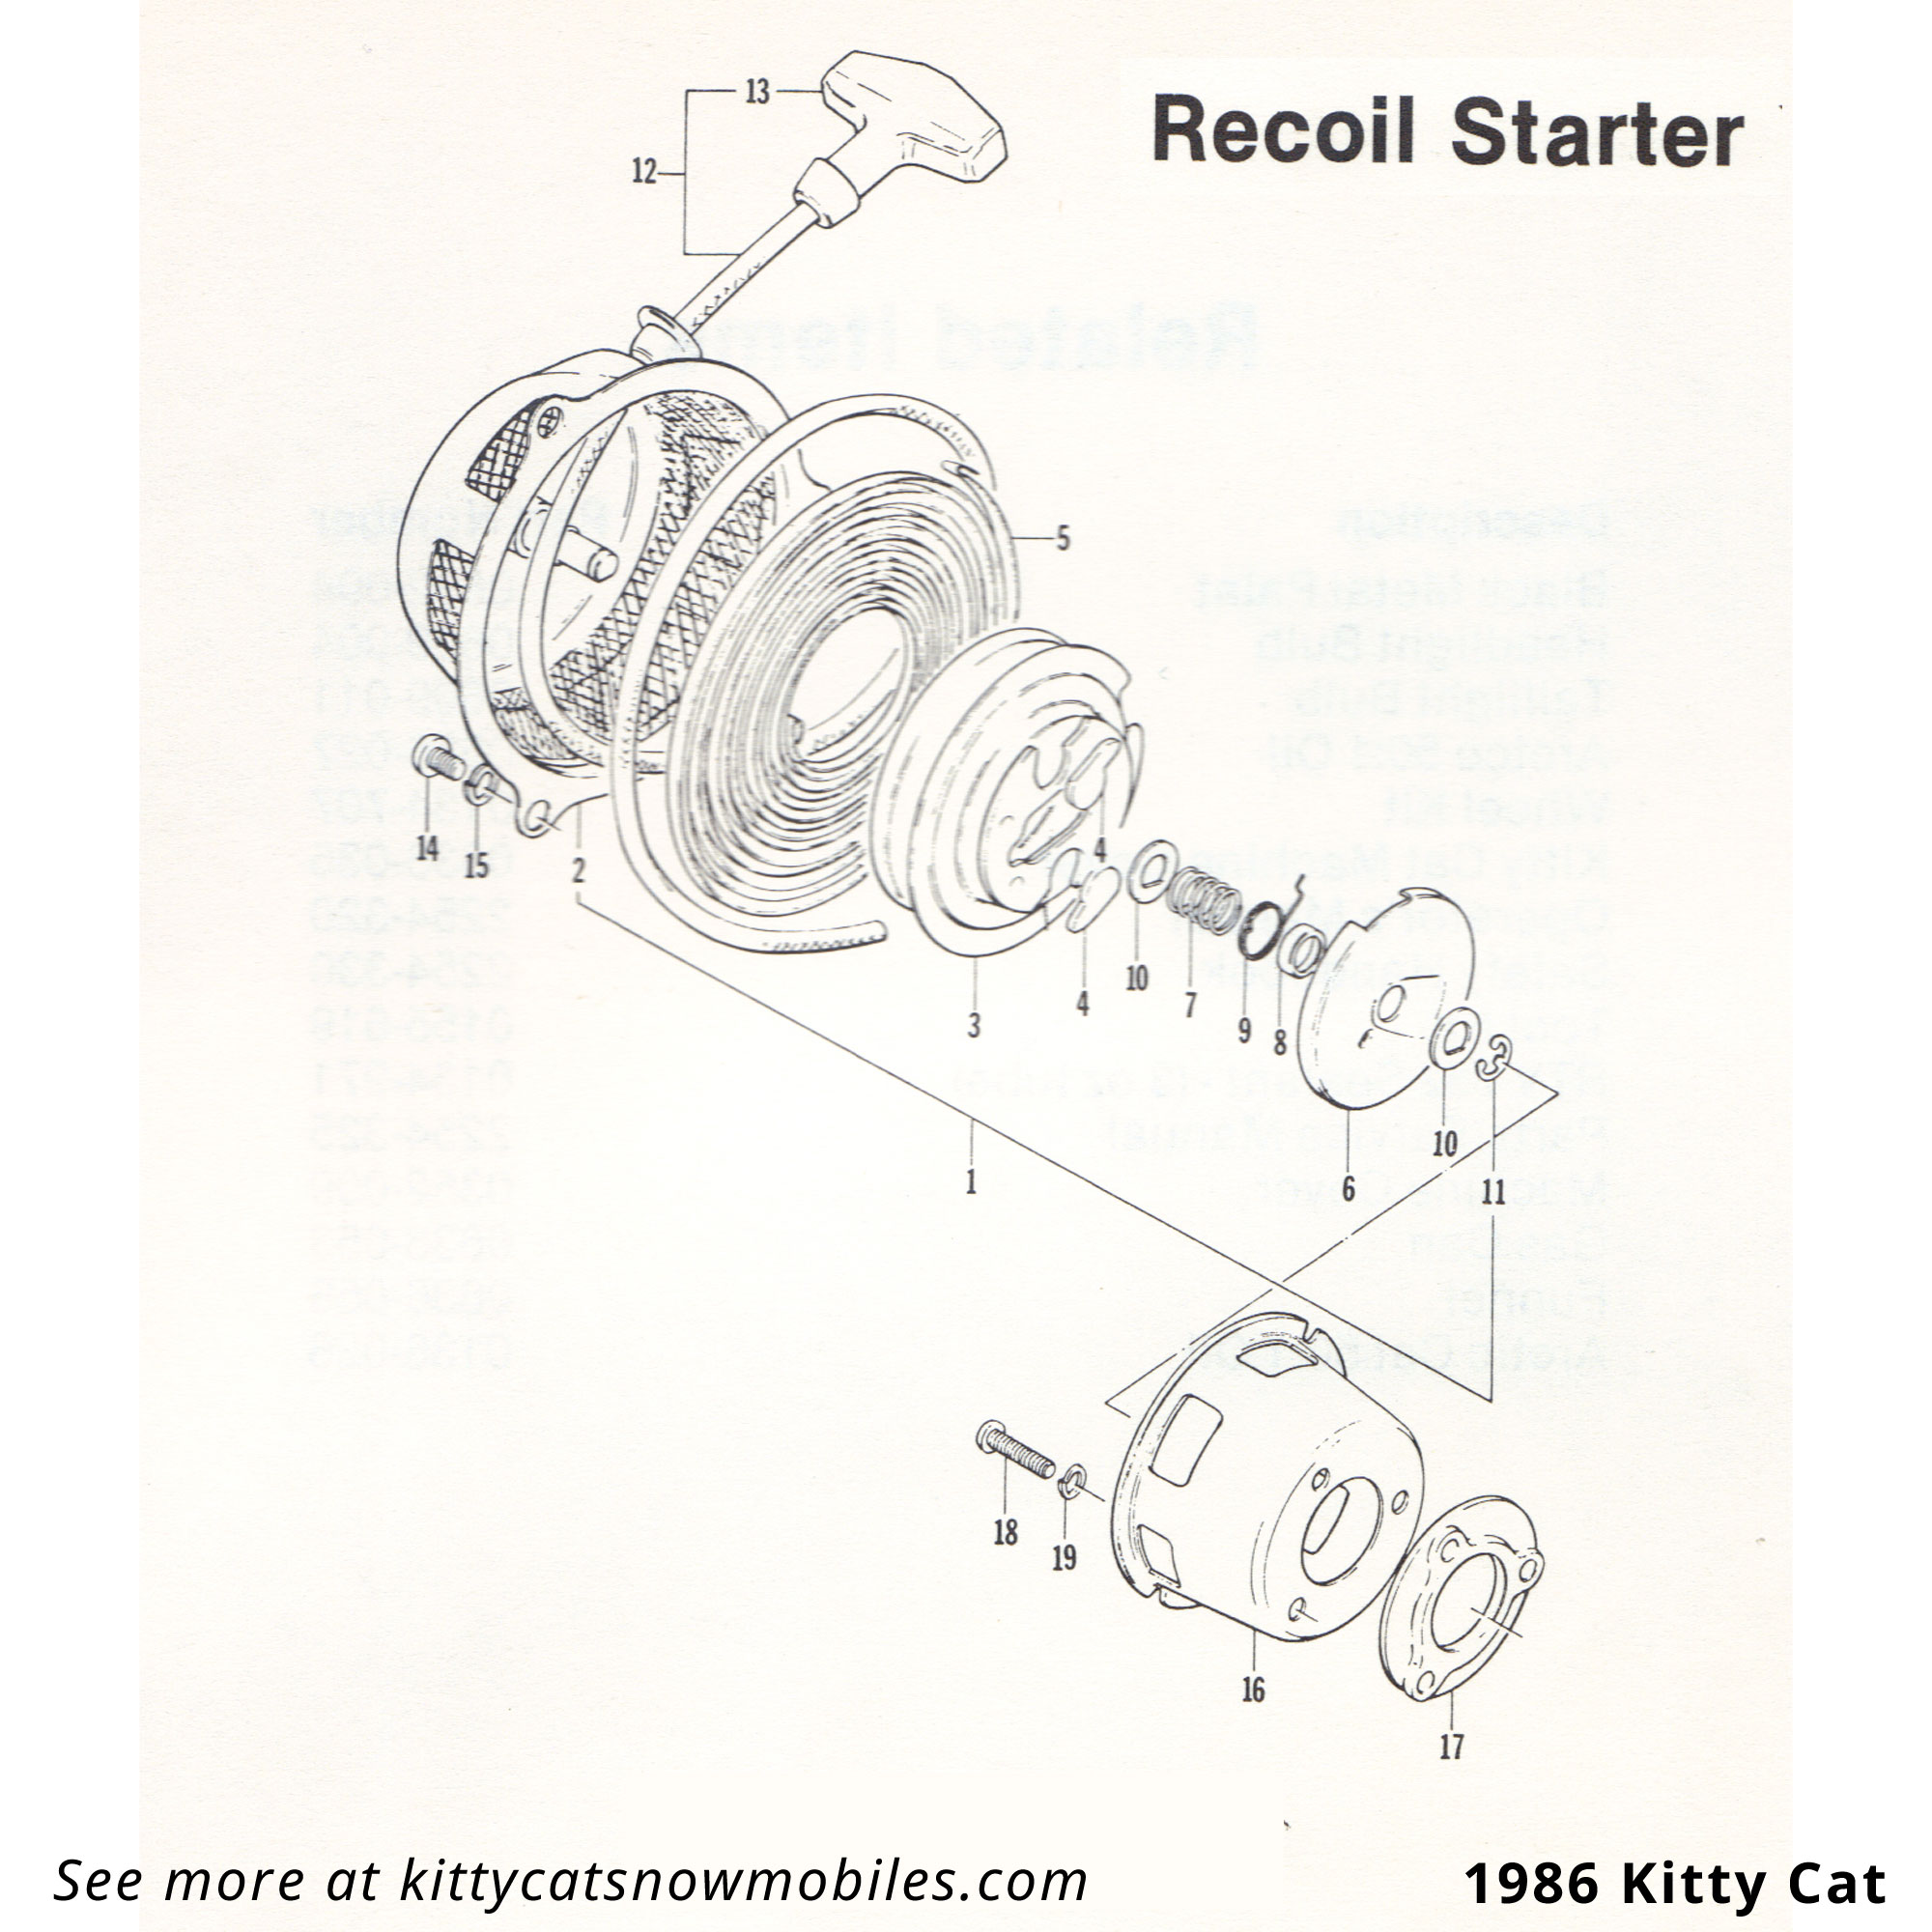 86 Recoil Starter parts